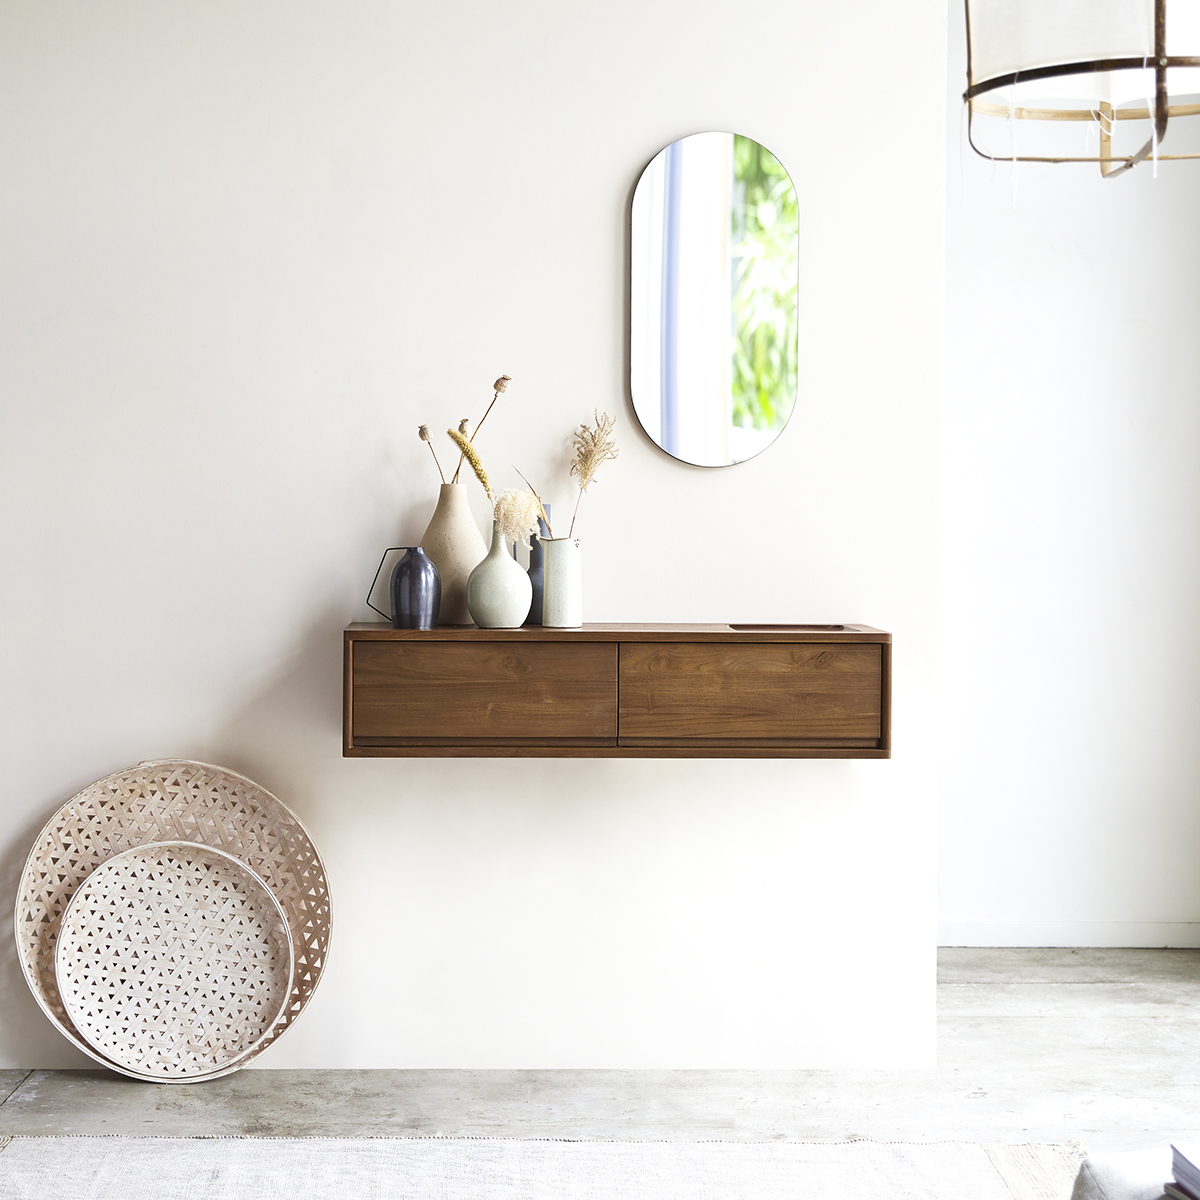 Circa solid teak 2-drawer Console table